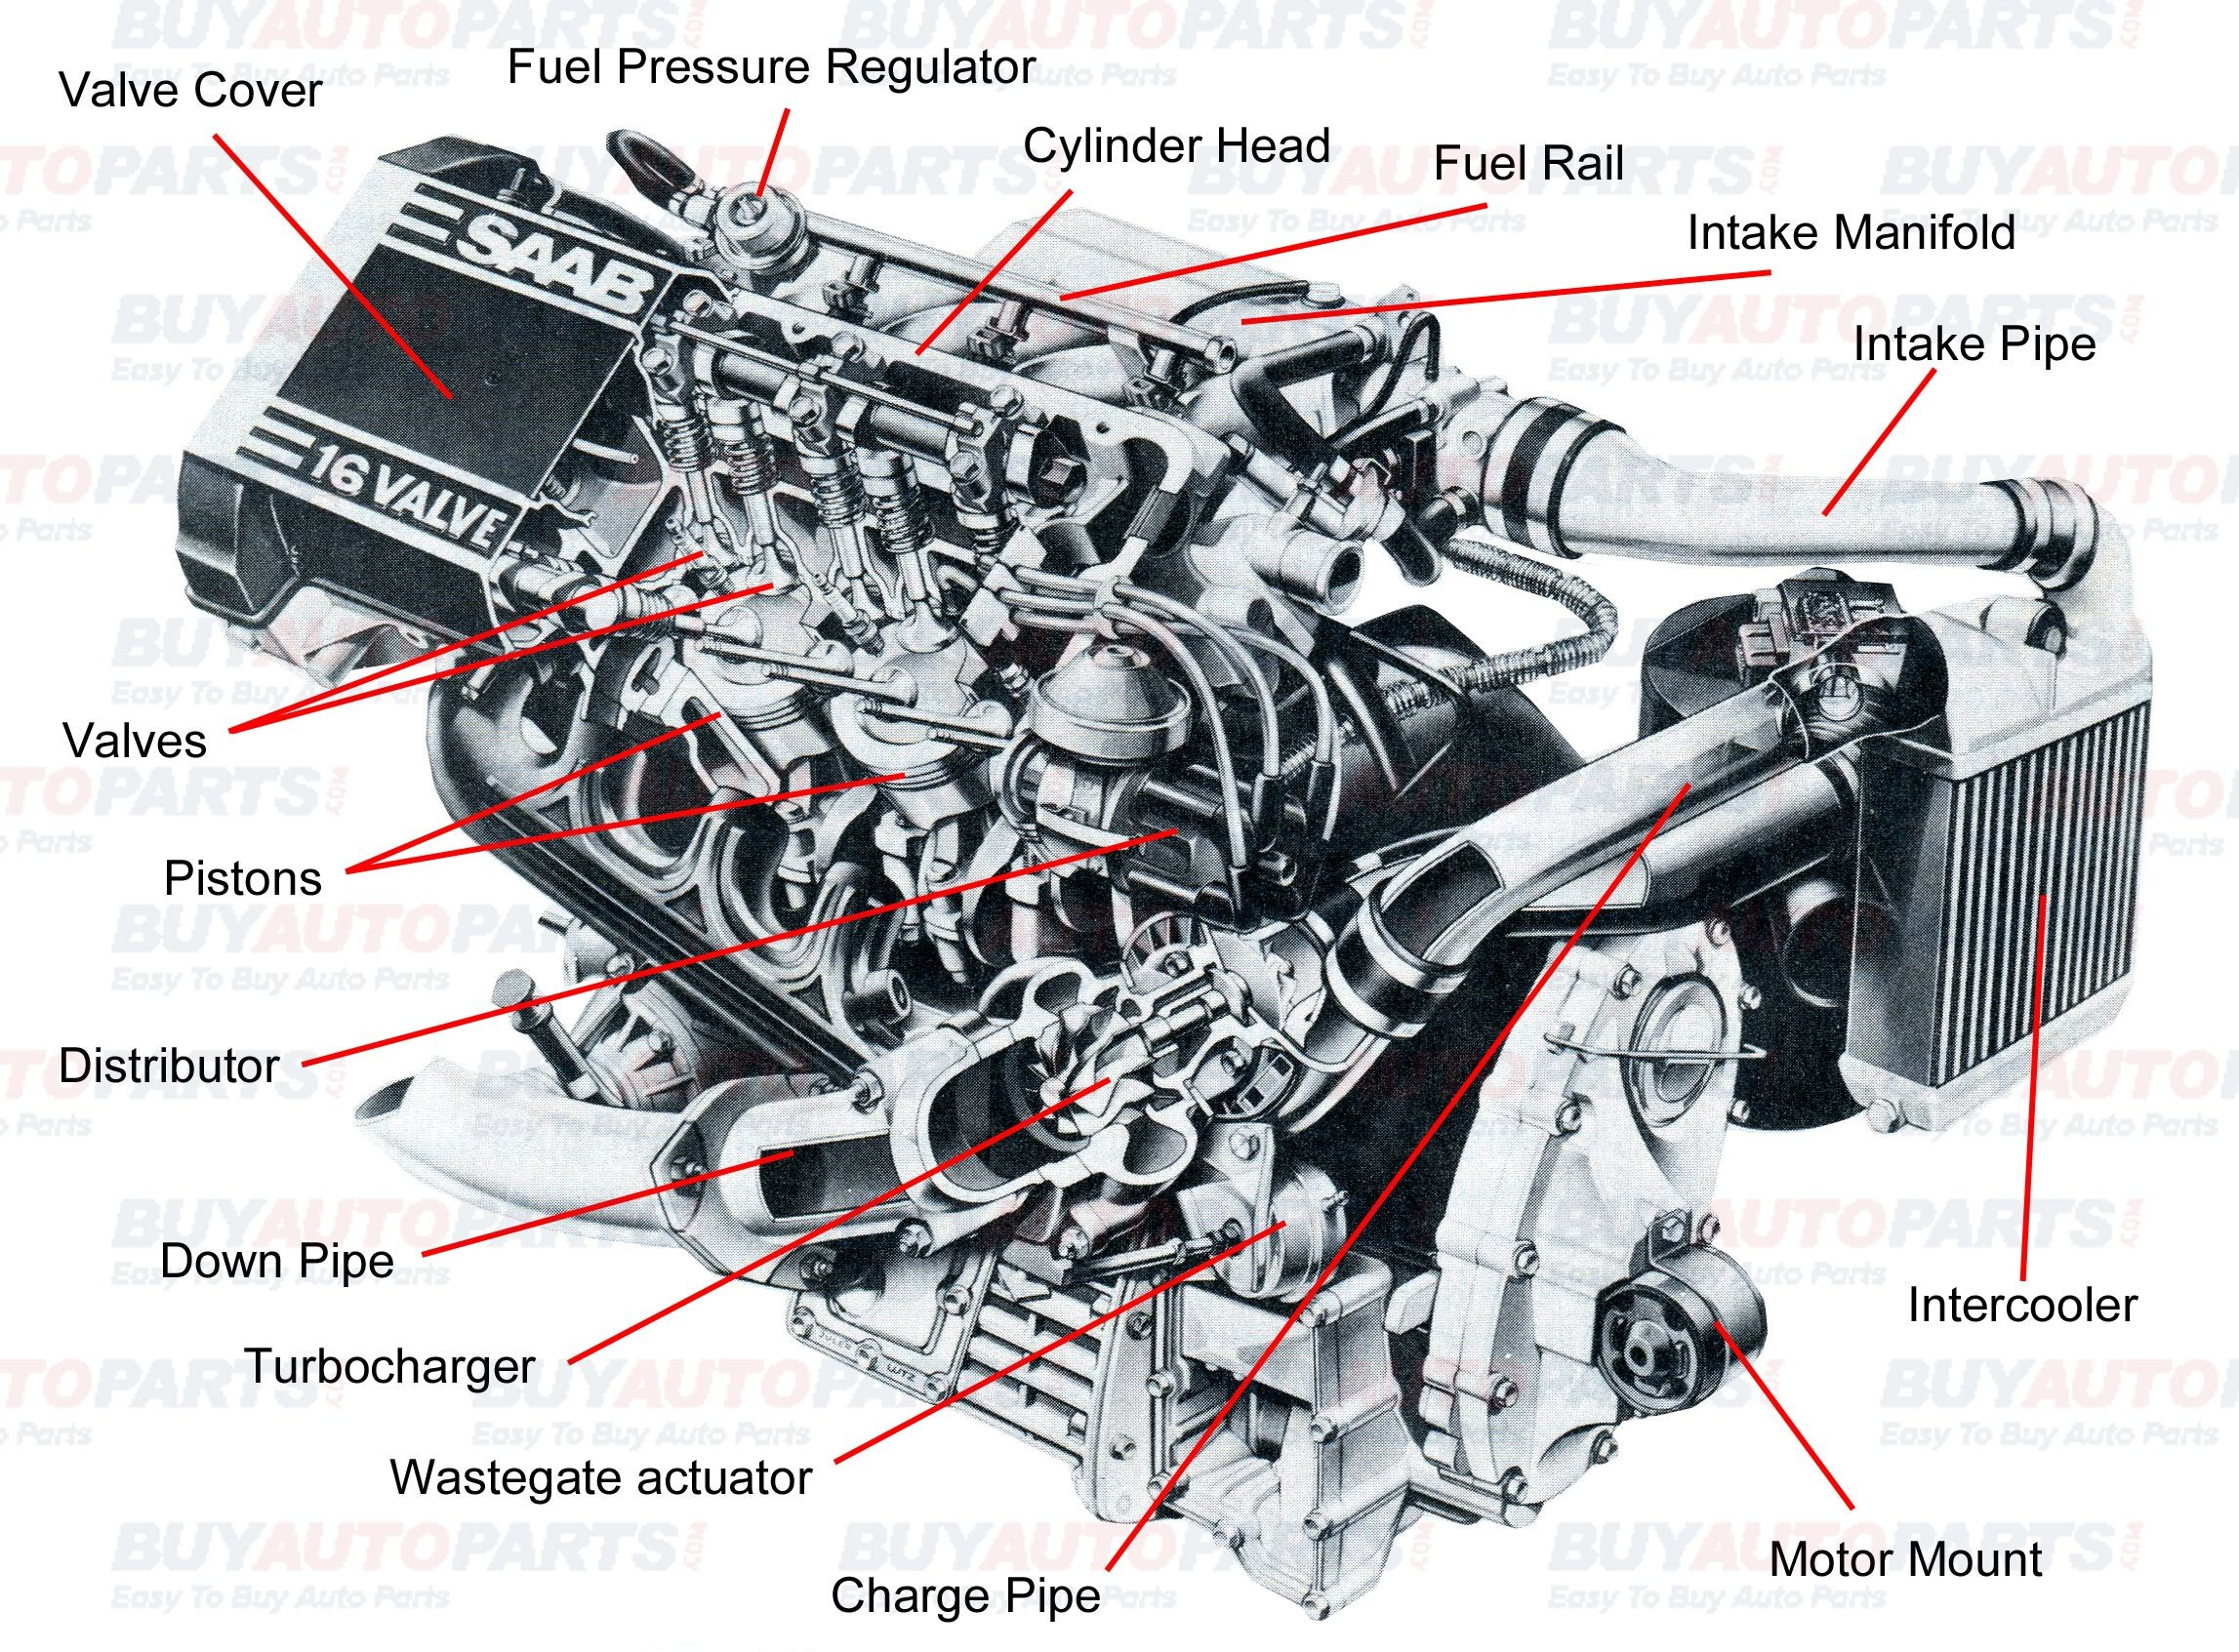 How Does A Combustion Engine Work Diagram All Internal Bustion Engines Have the Same Basic Ponents the Of How Does A Combustion Engine Work Diagram